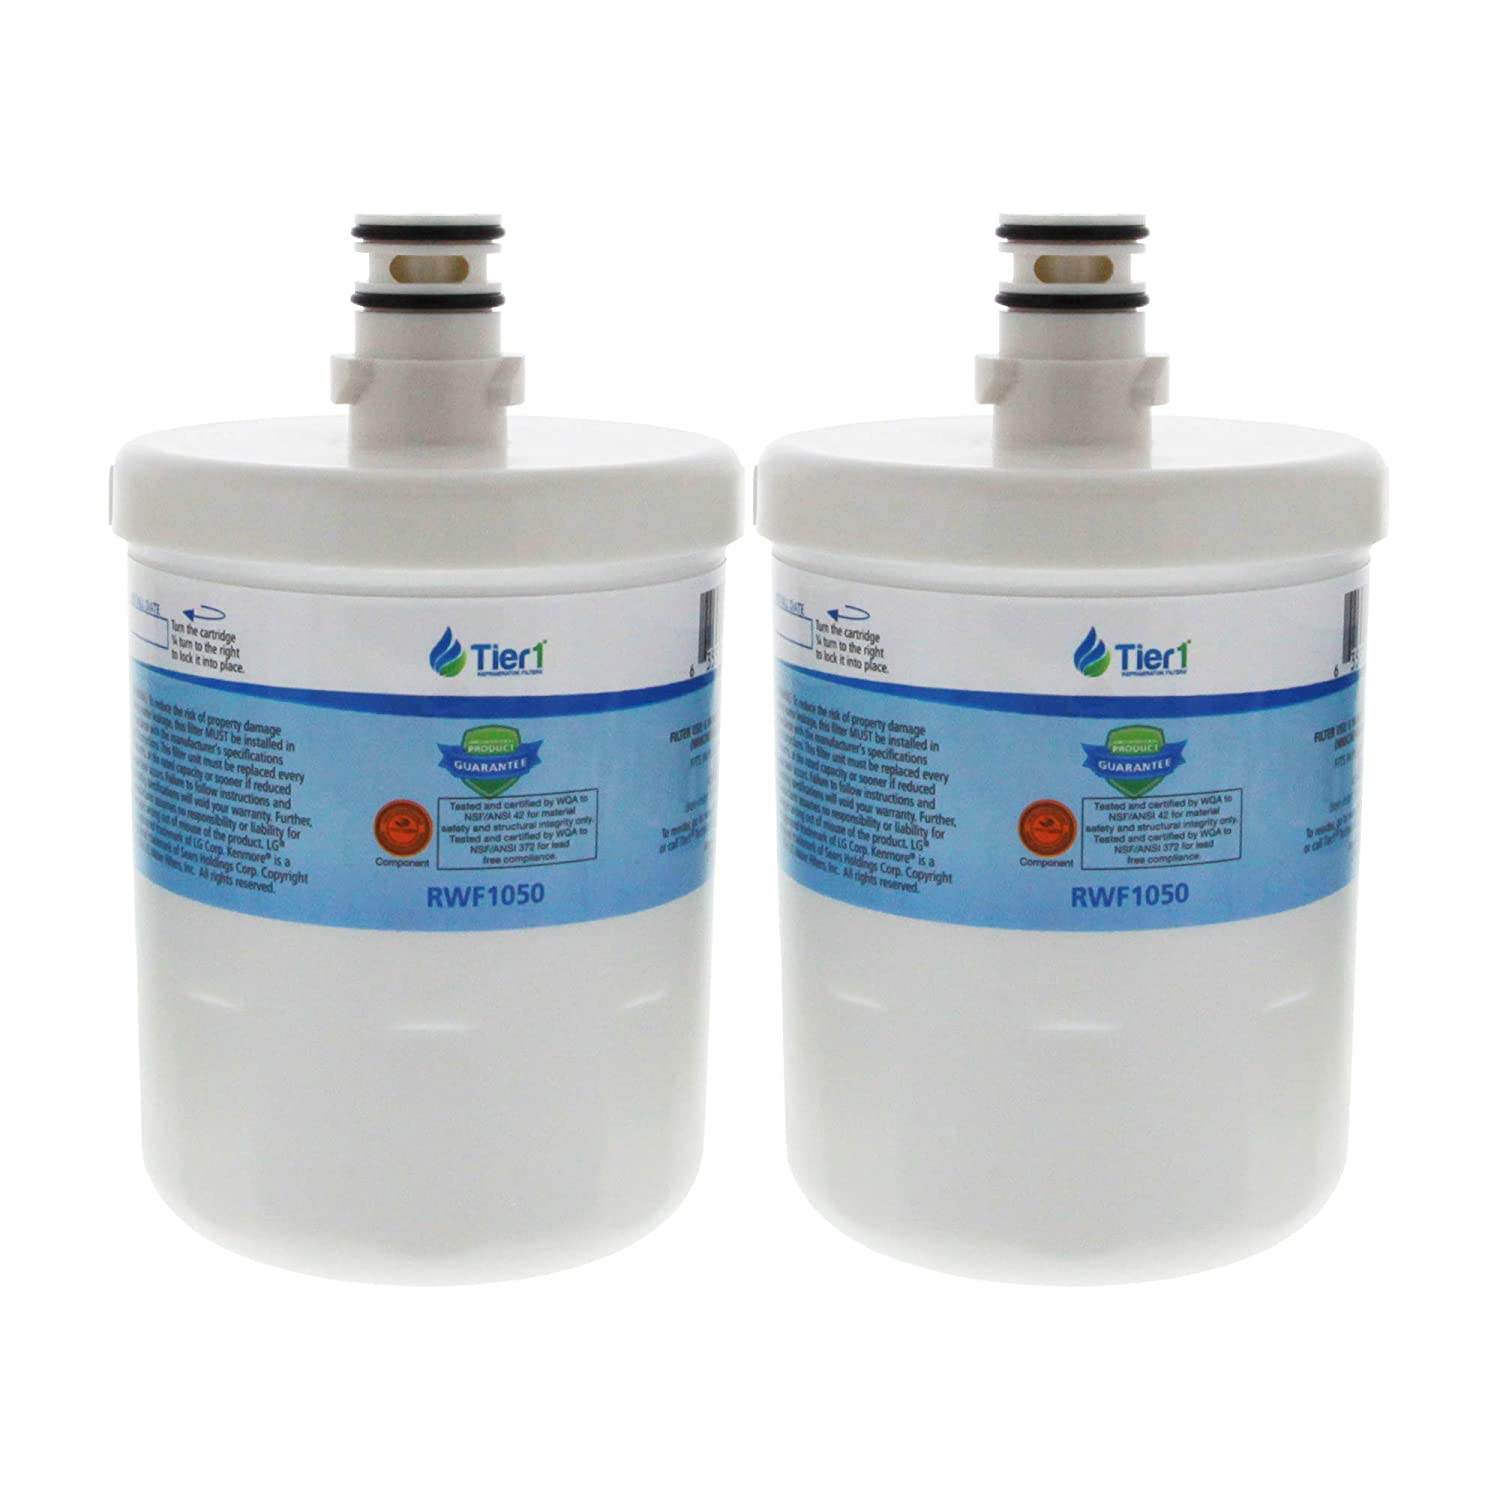 Tier1 Replacement for LG LT500P, 5231JA2002A, GEN11042FR-08, ADQ72910902, ADQ72910907, ADQ72910901 Refrigerator Water Filter 2 Pack